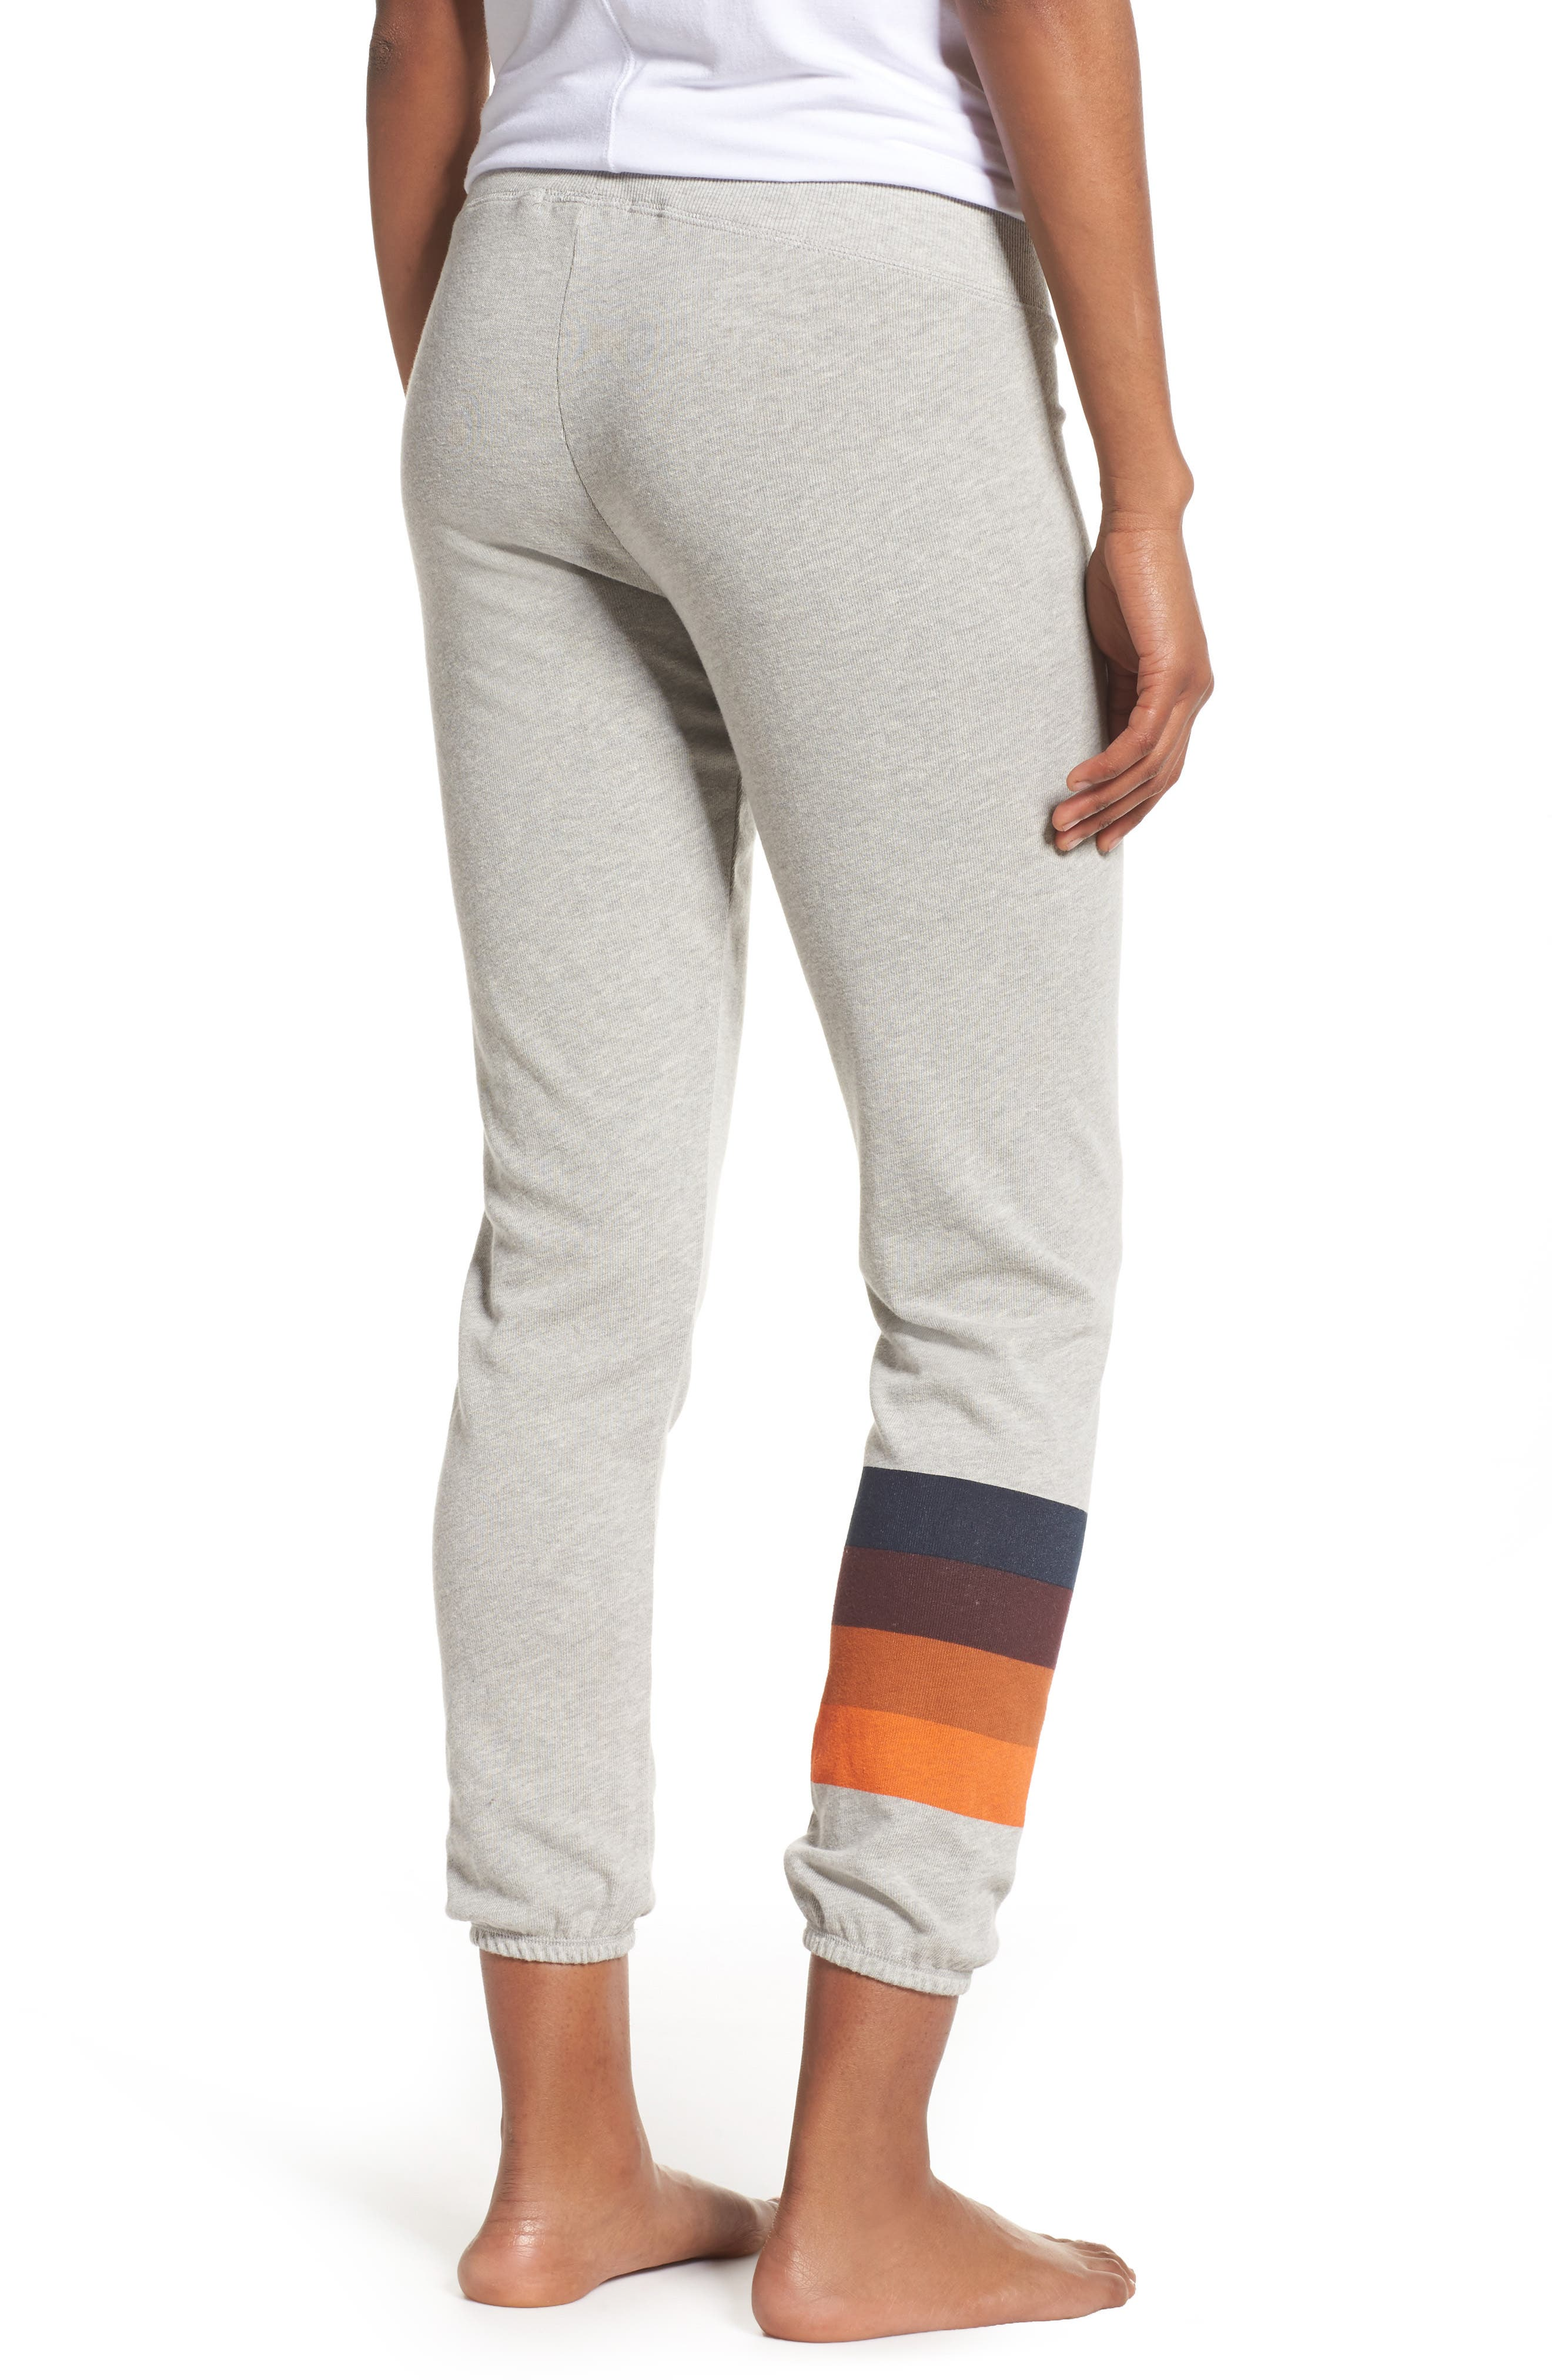 NFL Chicago Bears Hacci Sweatpants,                             Alternate thumbnail 2, color,                             Dove Heather Grey